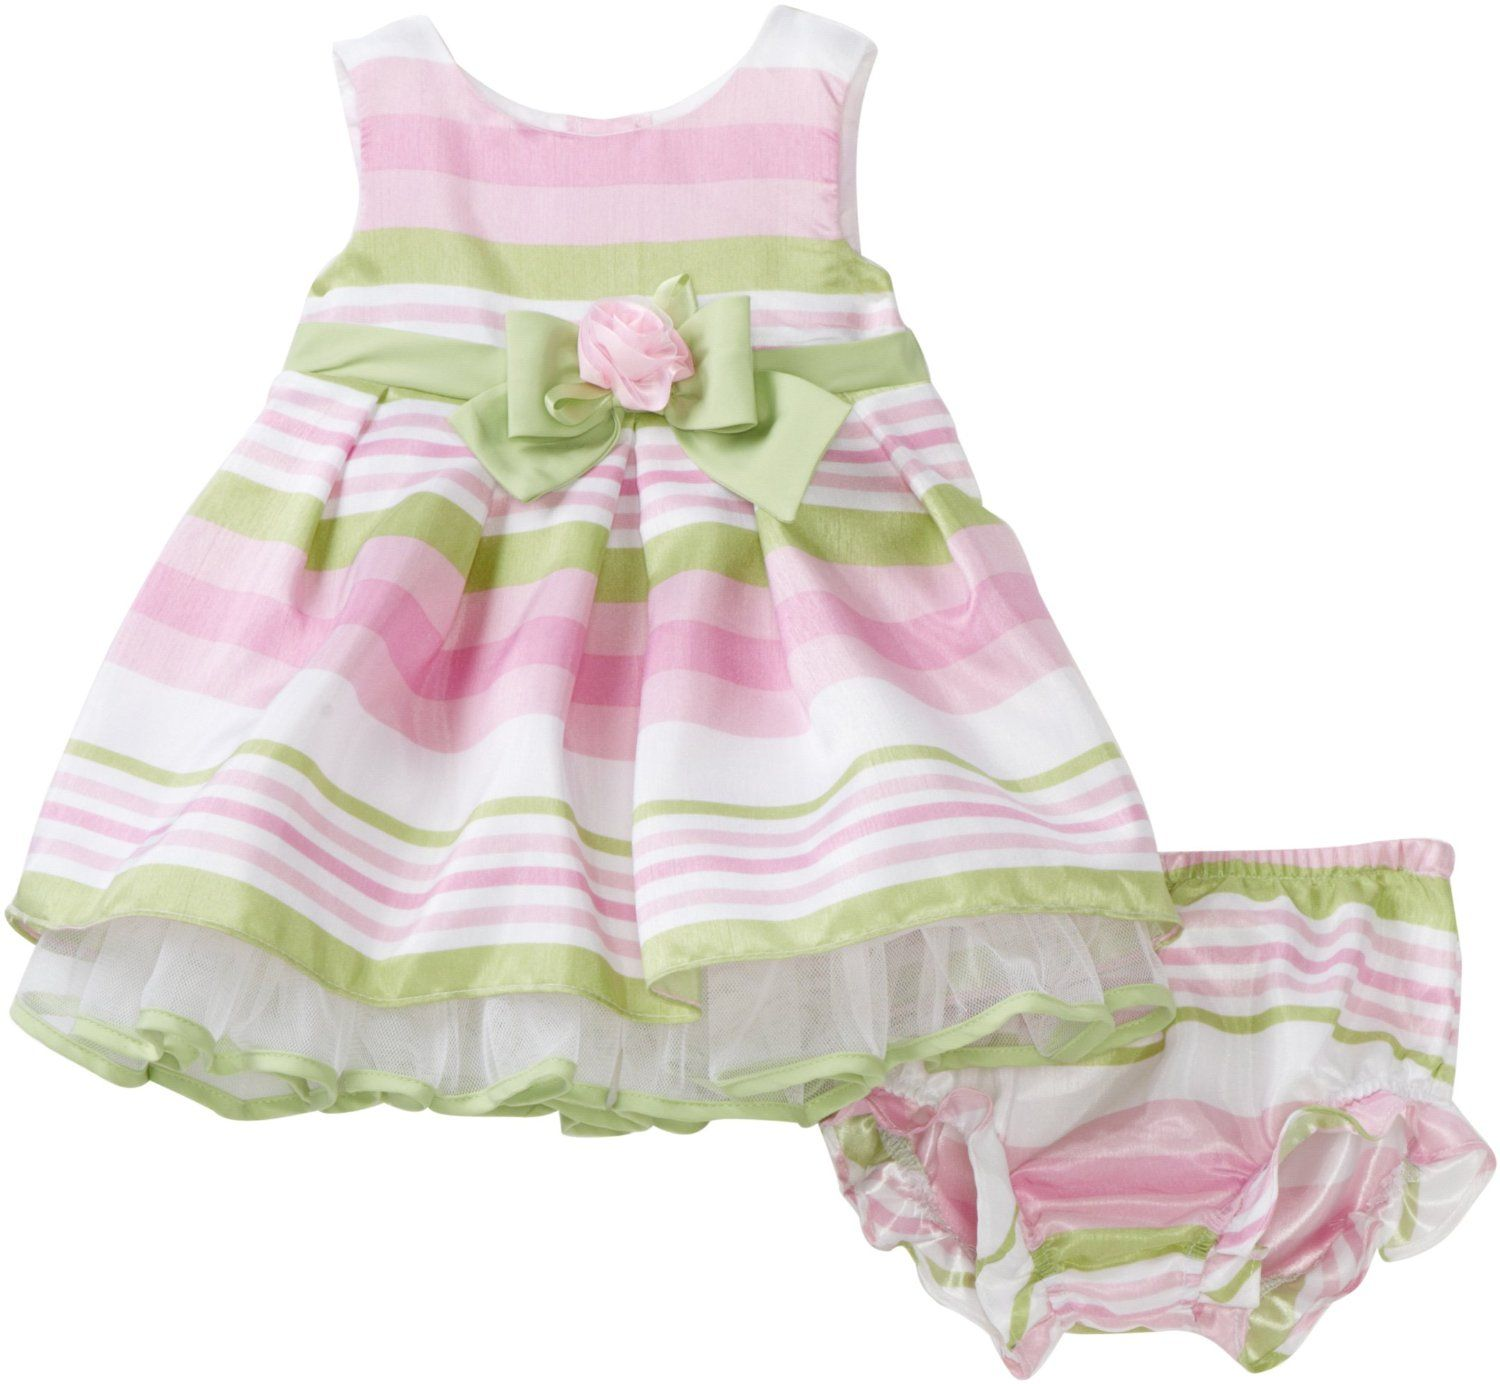 newborn baby dresses for special occasions | ... Infant dress ...